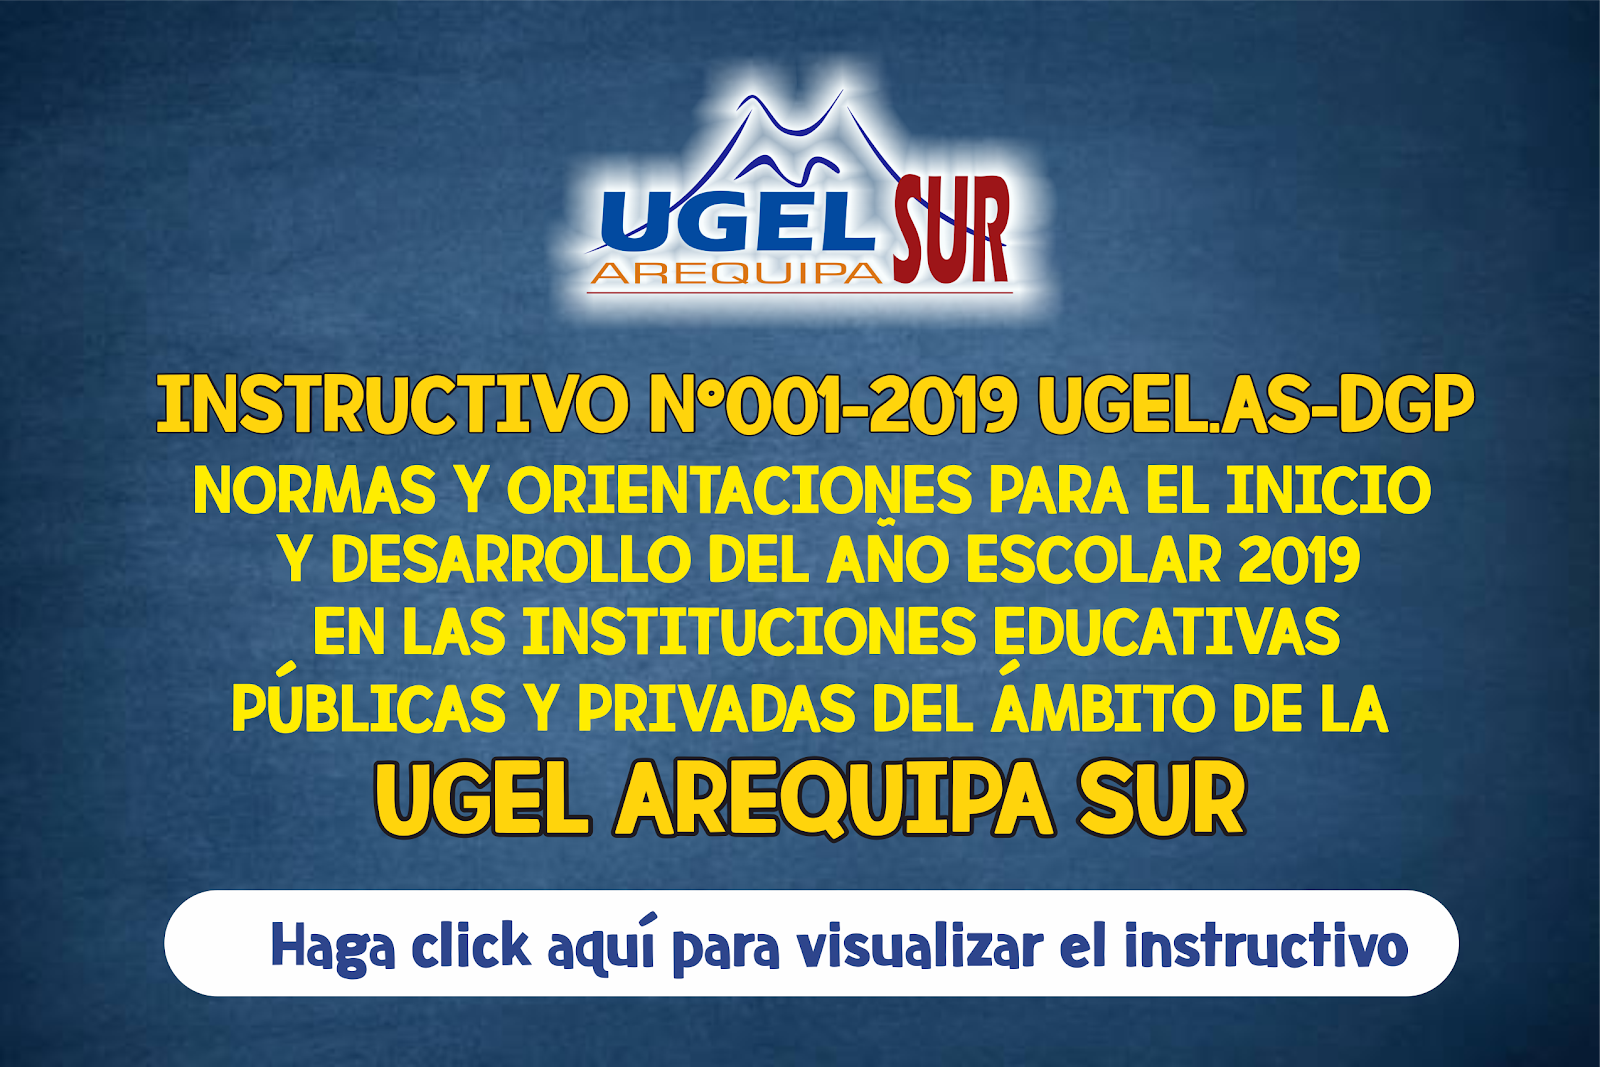 INSTRUCTIVO N°001 - 2019 UGEL AS-DGP